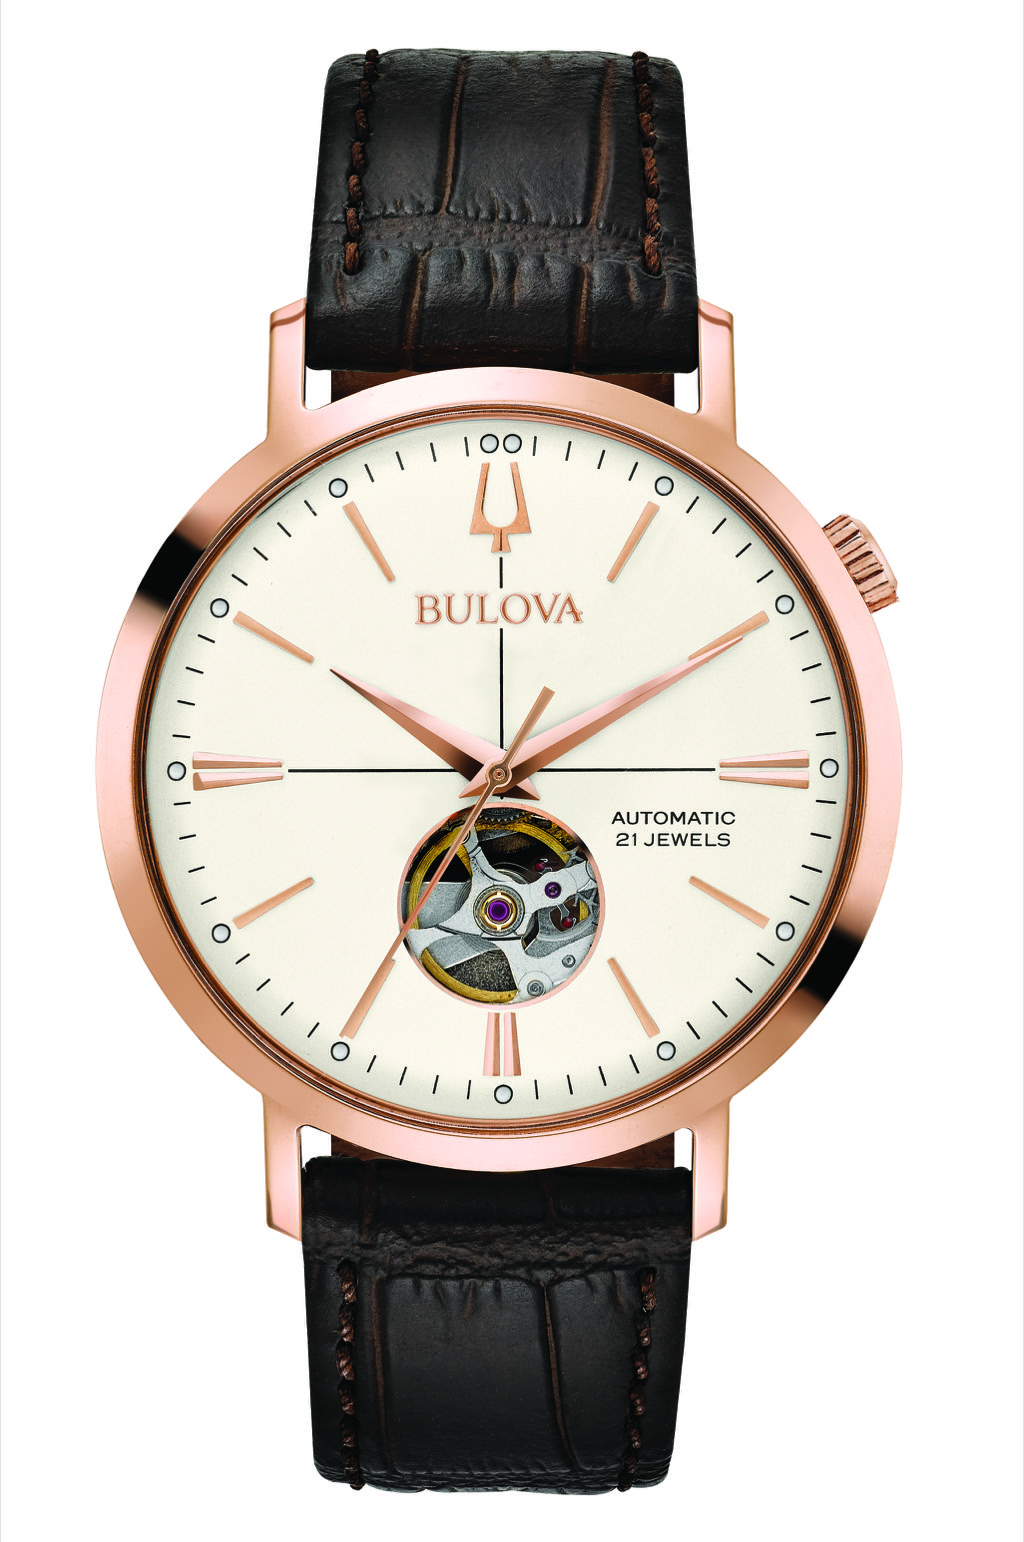 The Bulova Classic Automatic is cool vintage watch you can buy right now